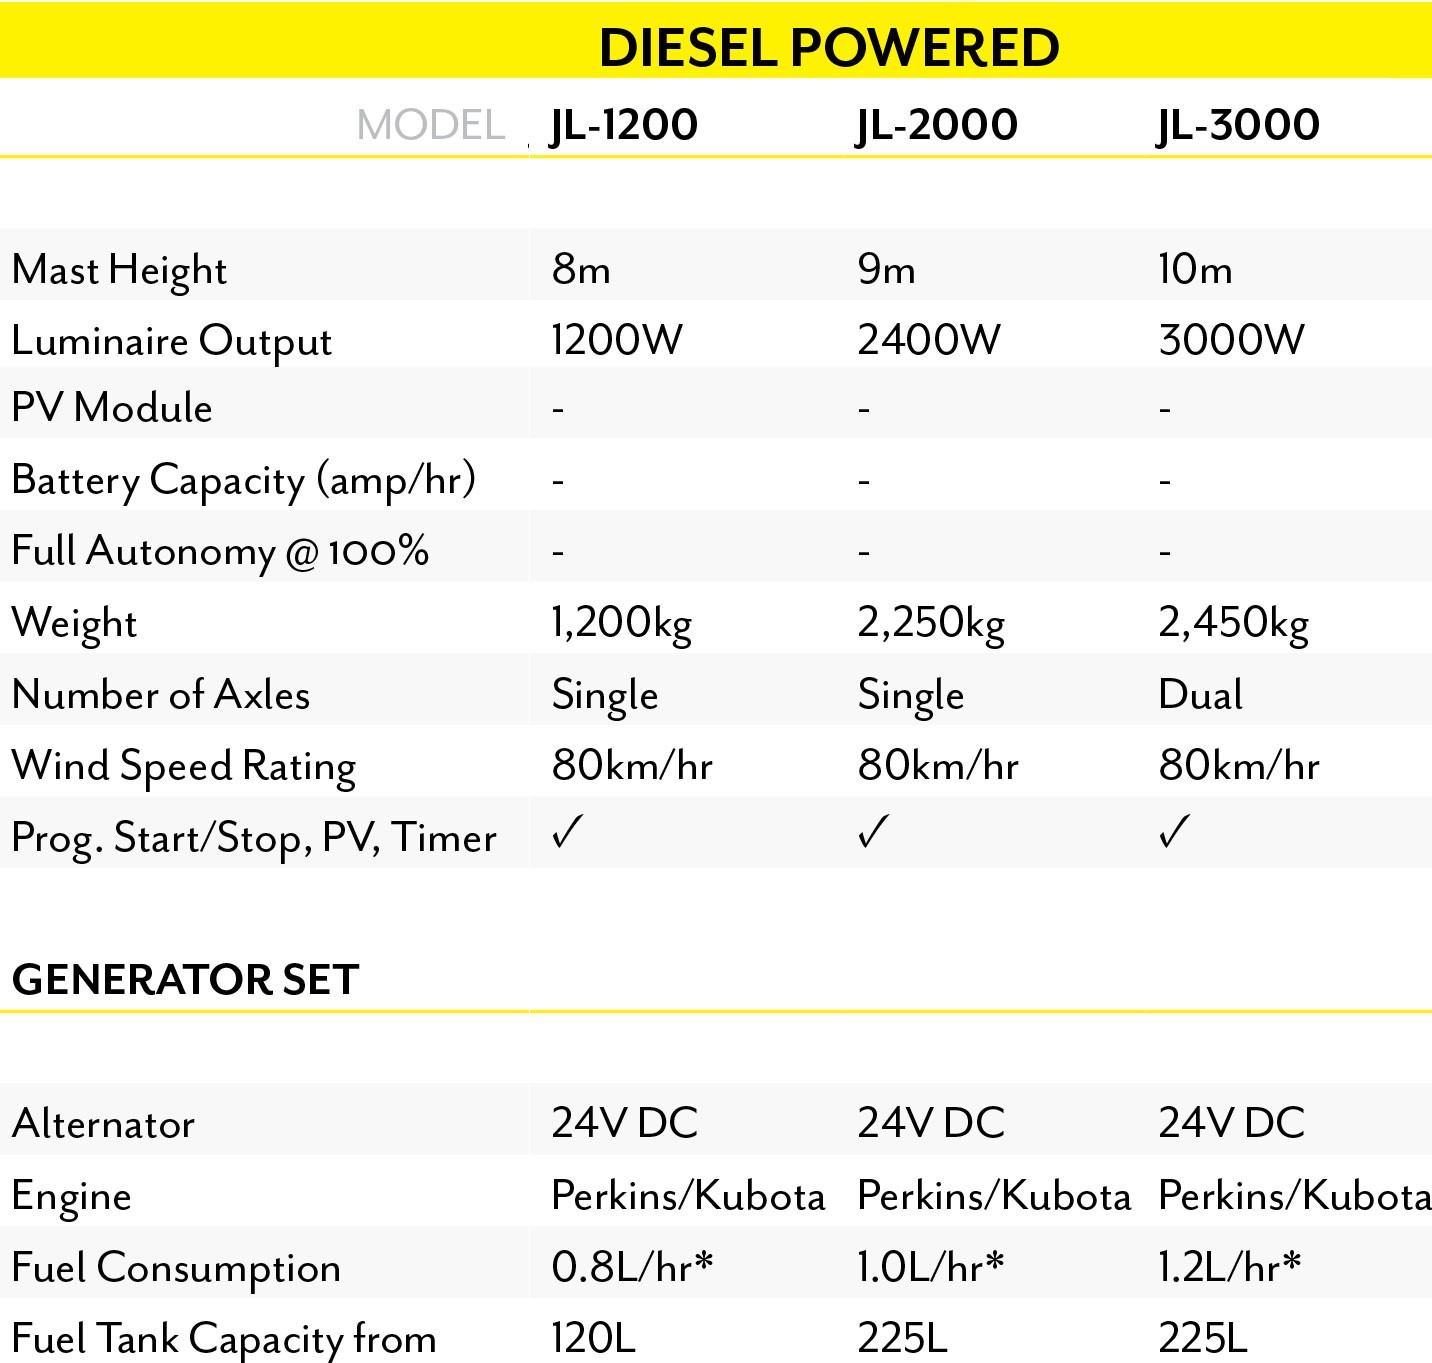 Diesel Powered Light Tower Specifications